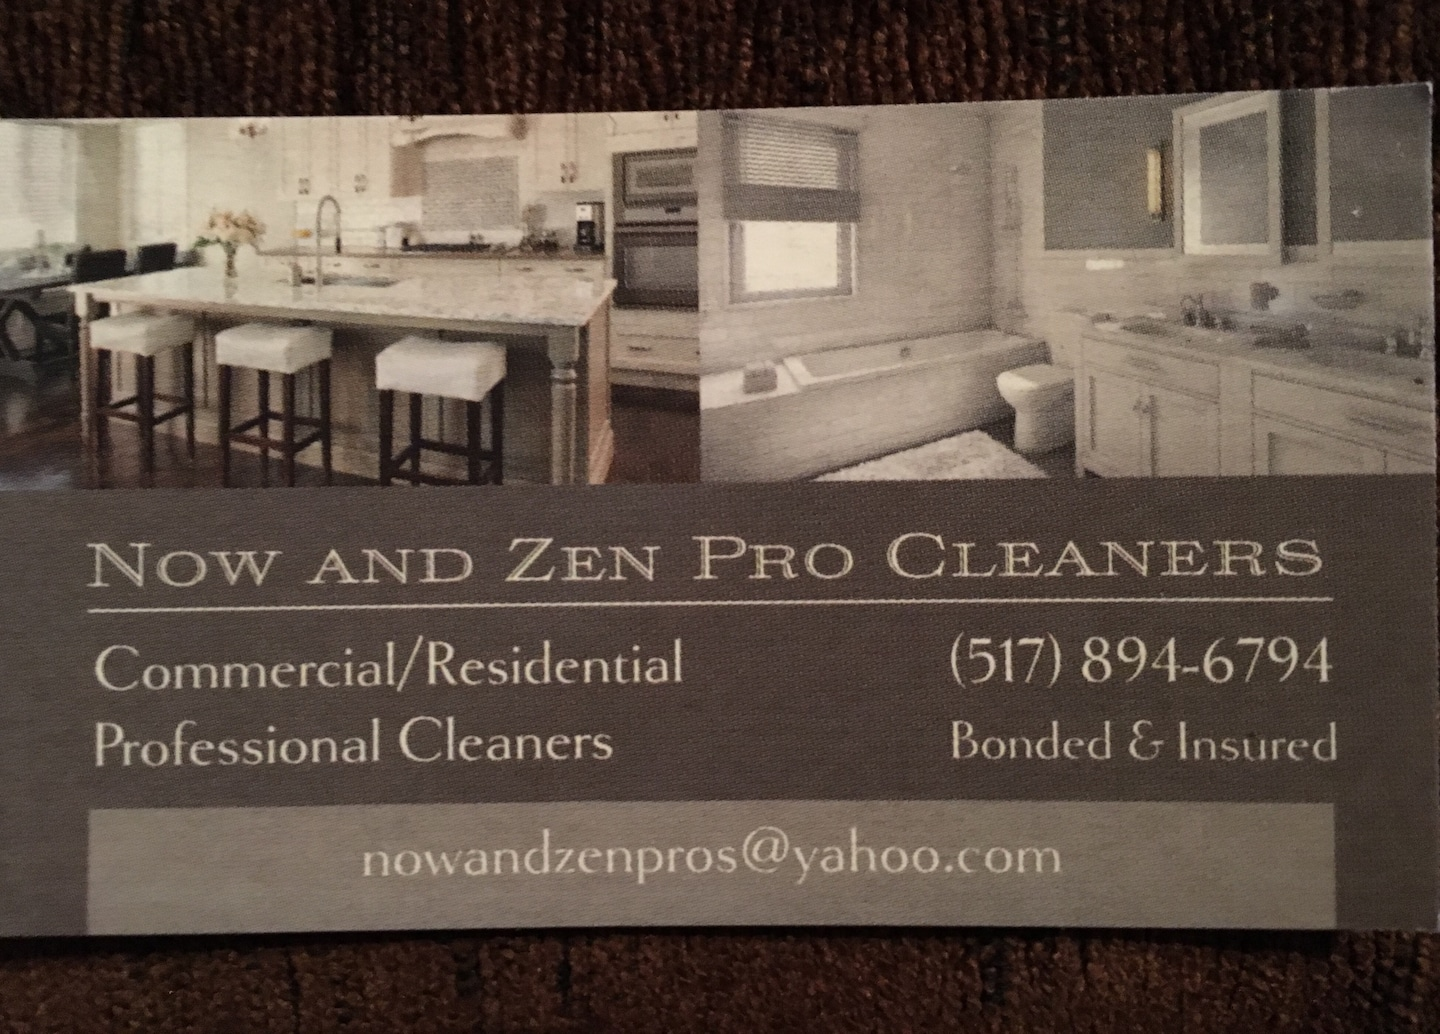 Now and Zen Pro Cleaners Llc